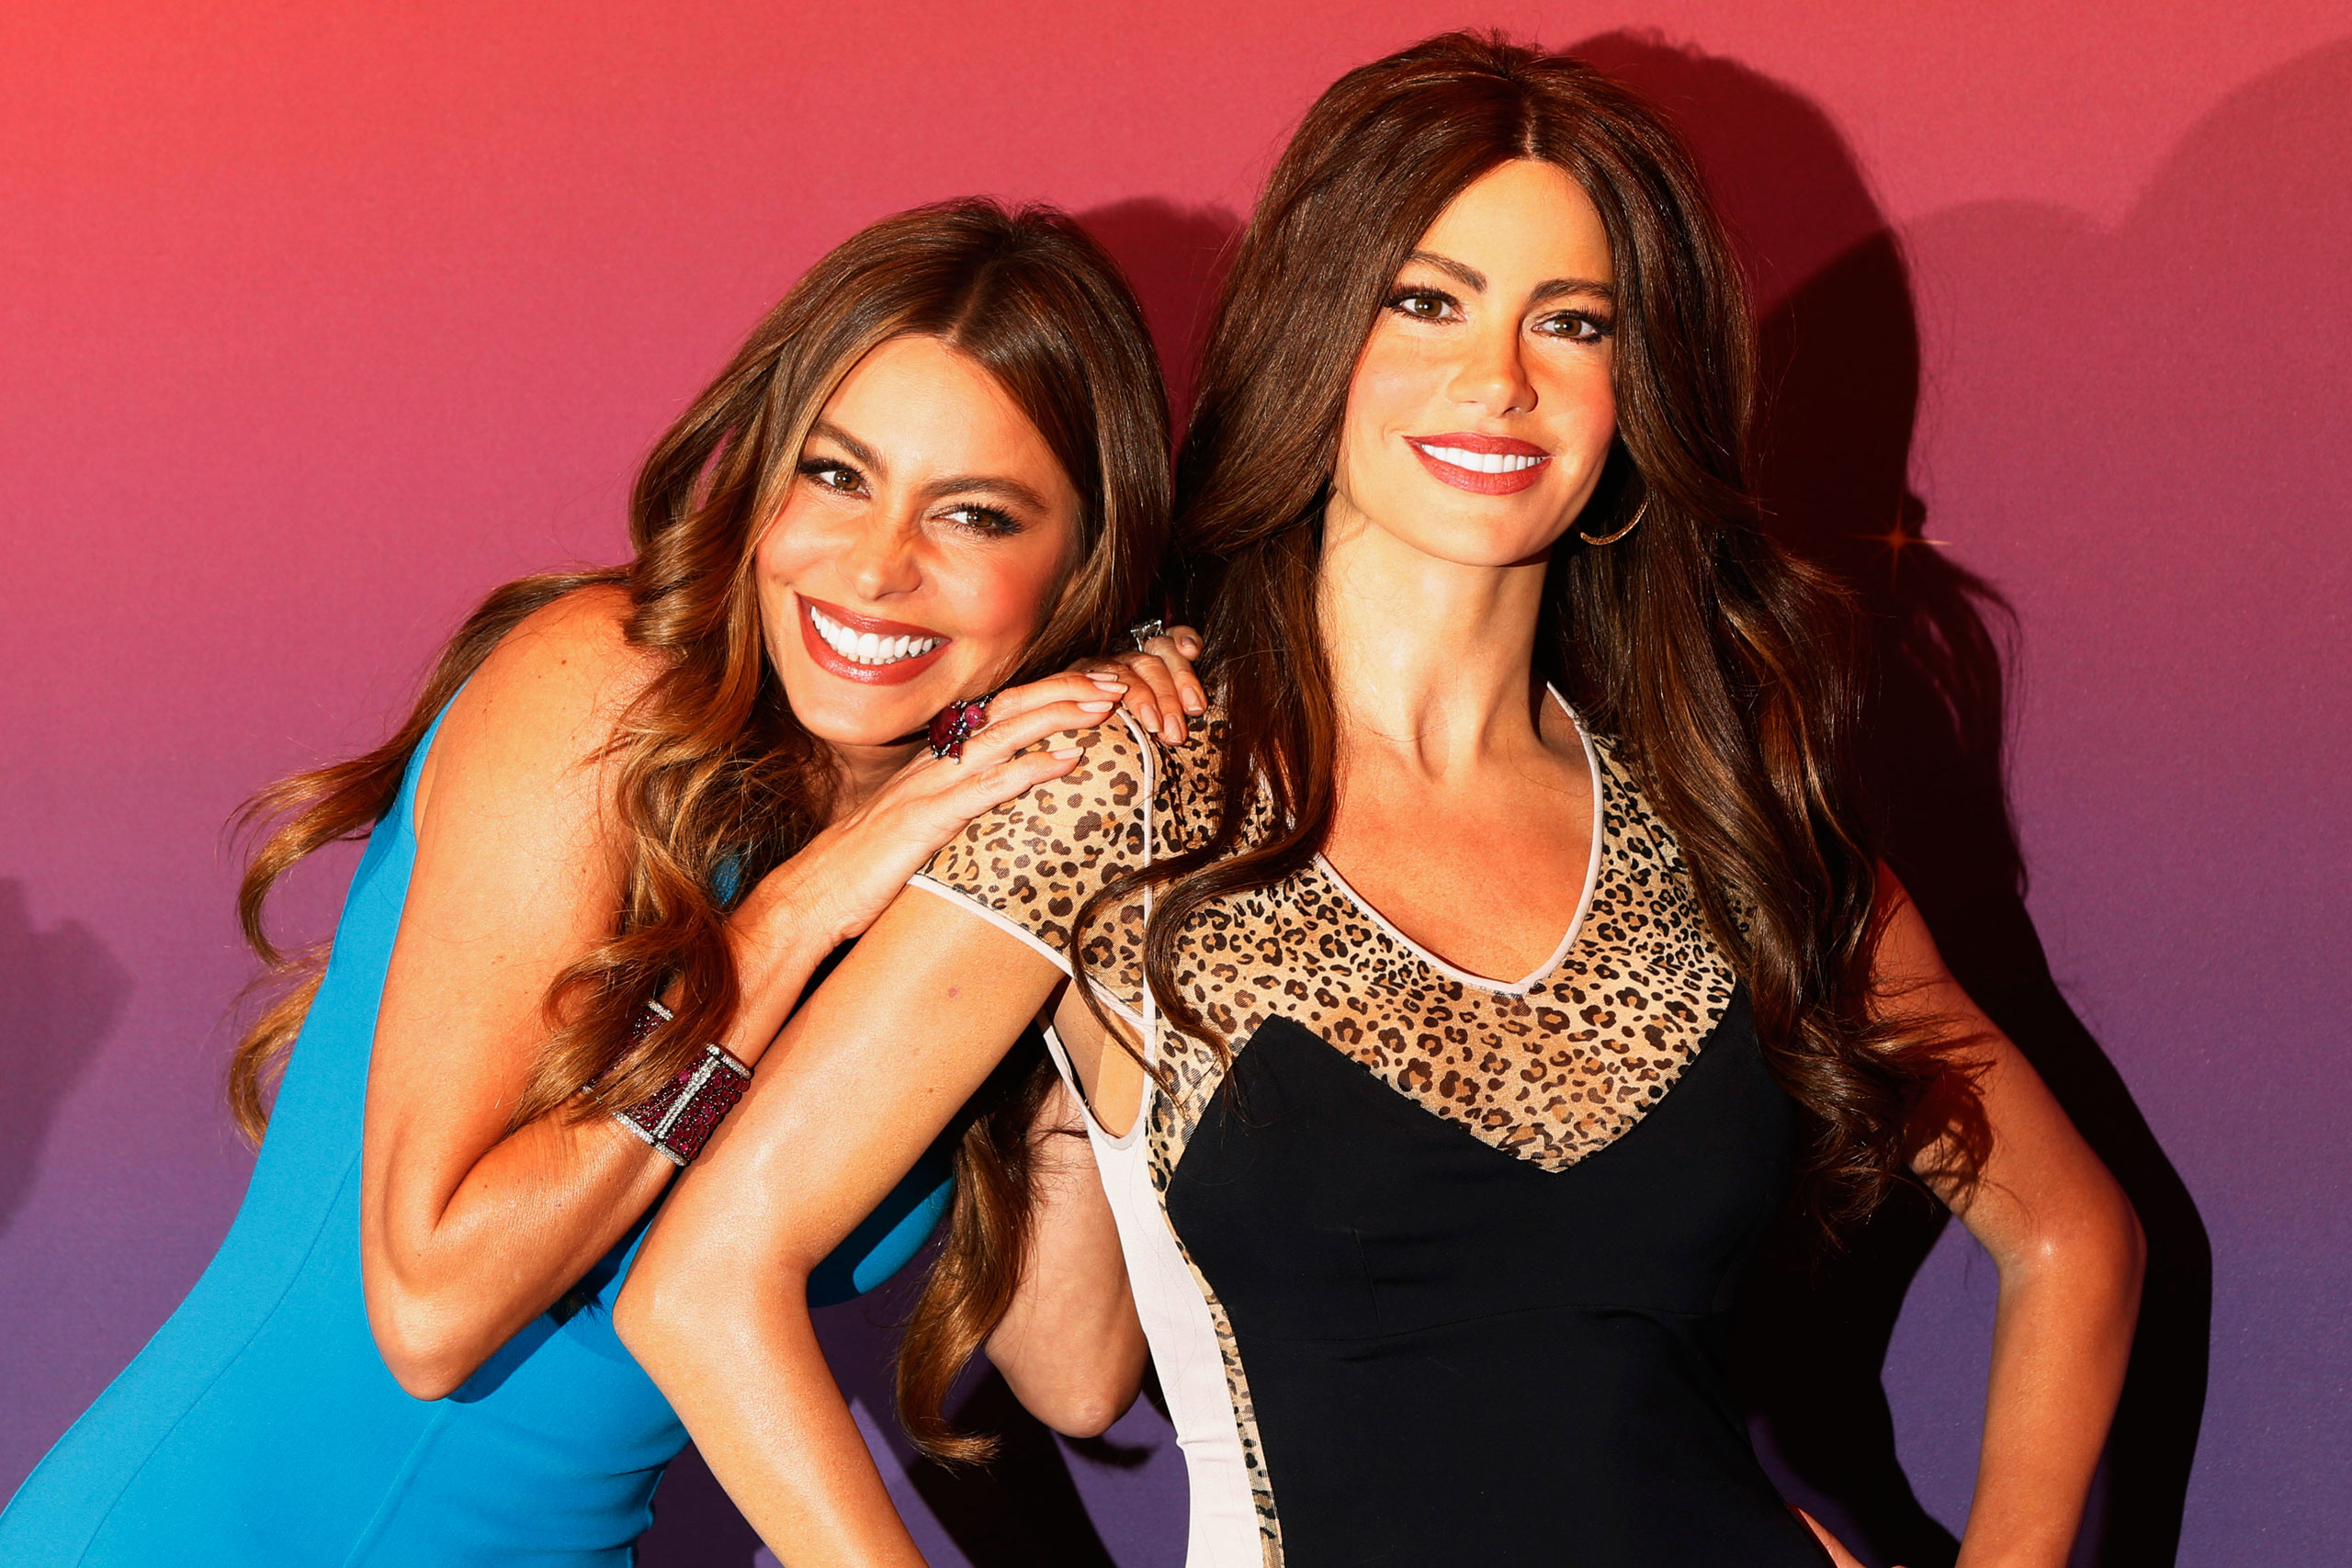 Sofia Vergara, left, poses with her wax figure during an unveiling at Madame Tussauds wax museum in New York on June 4, 2013.